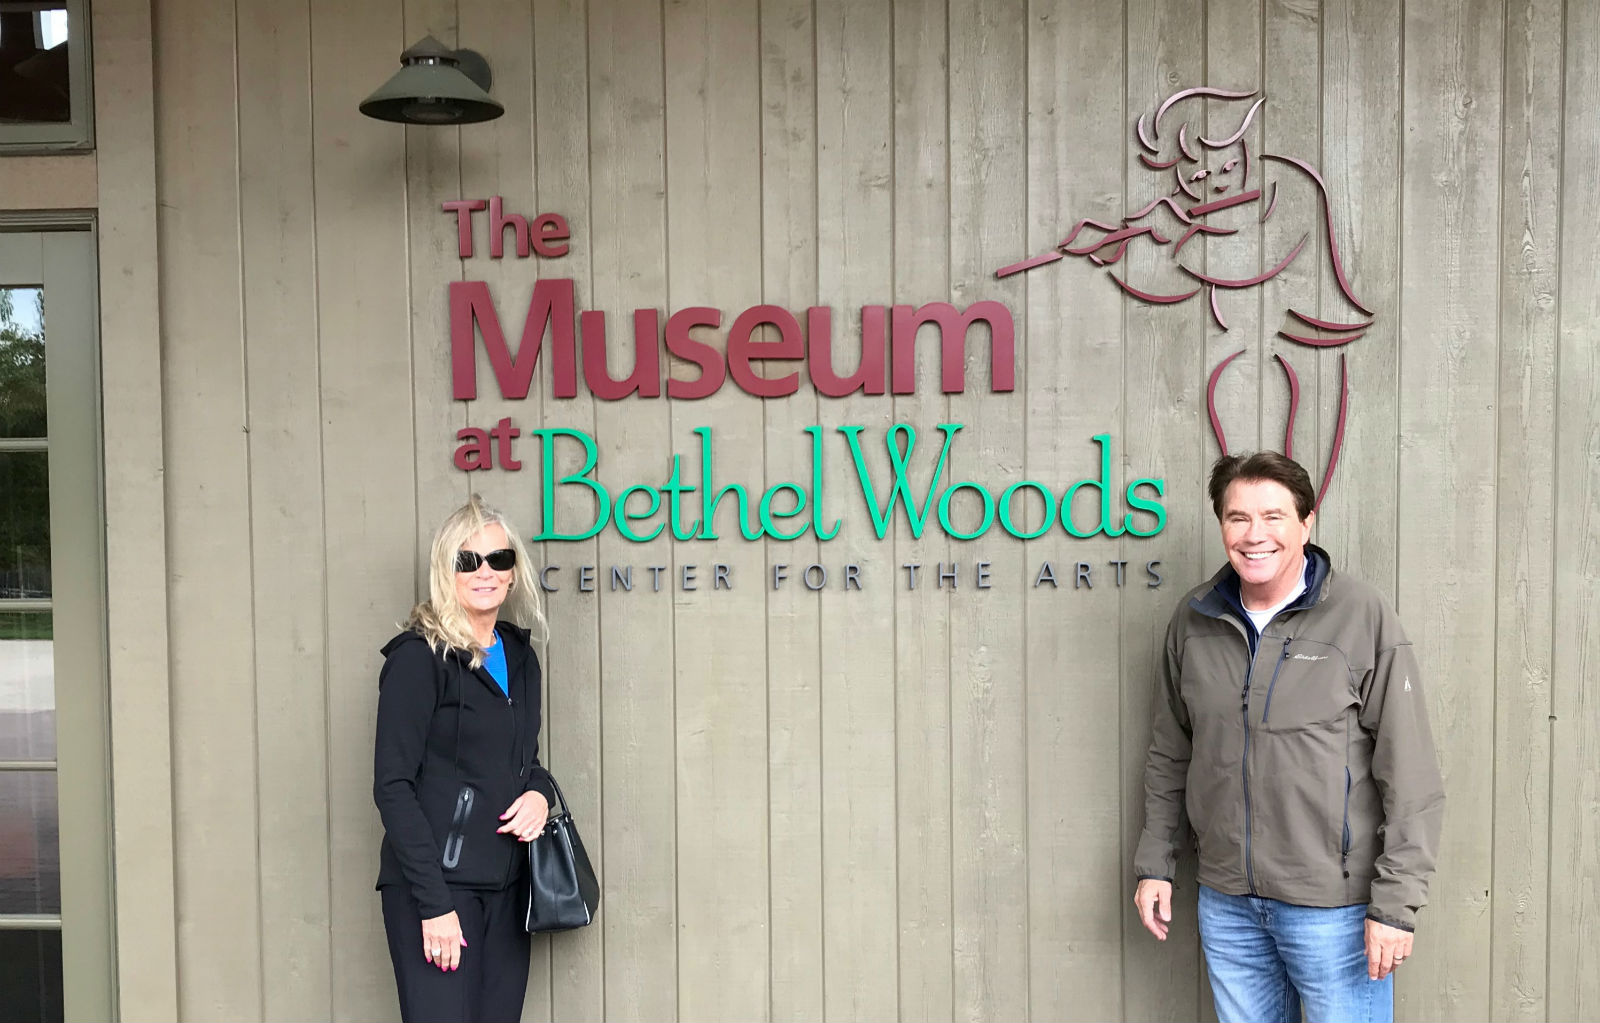 Bill and Sandy Hawkins in front of museum sign